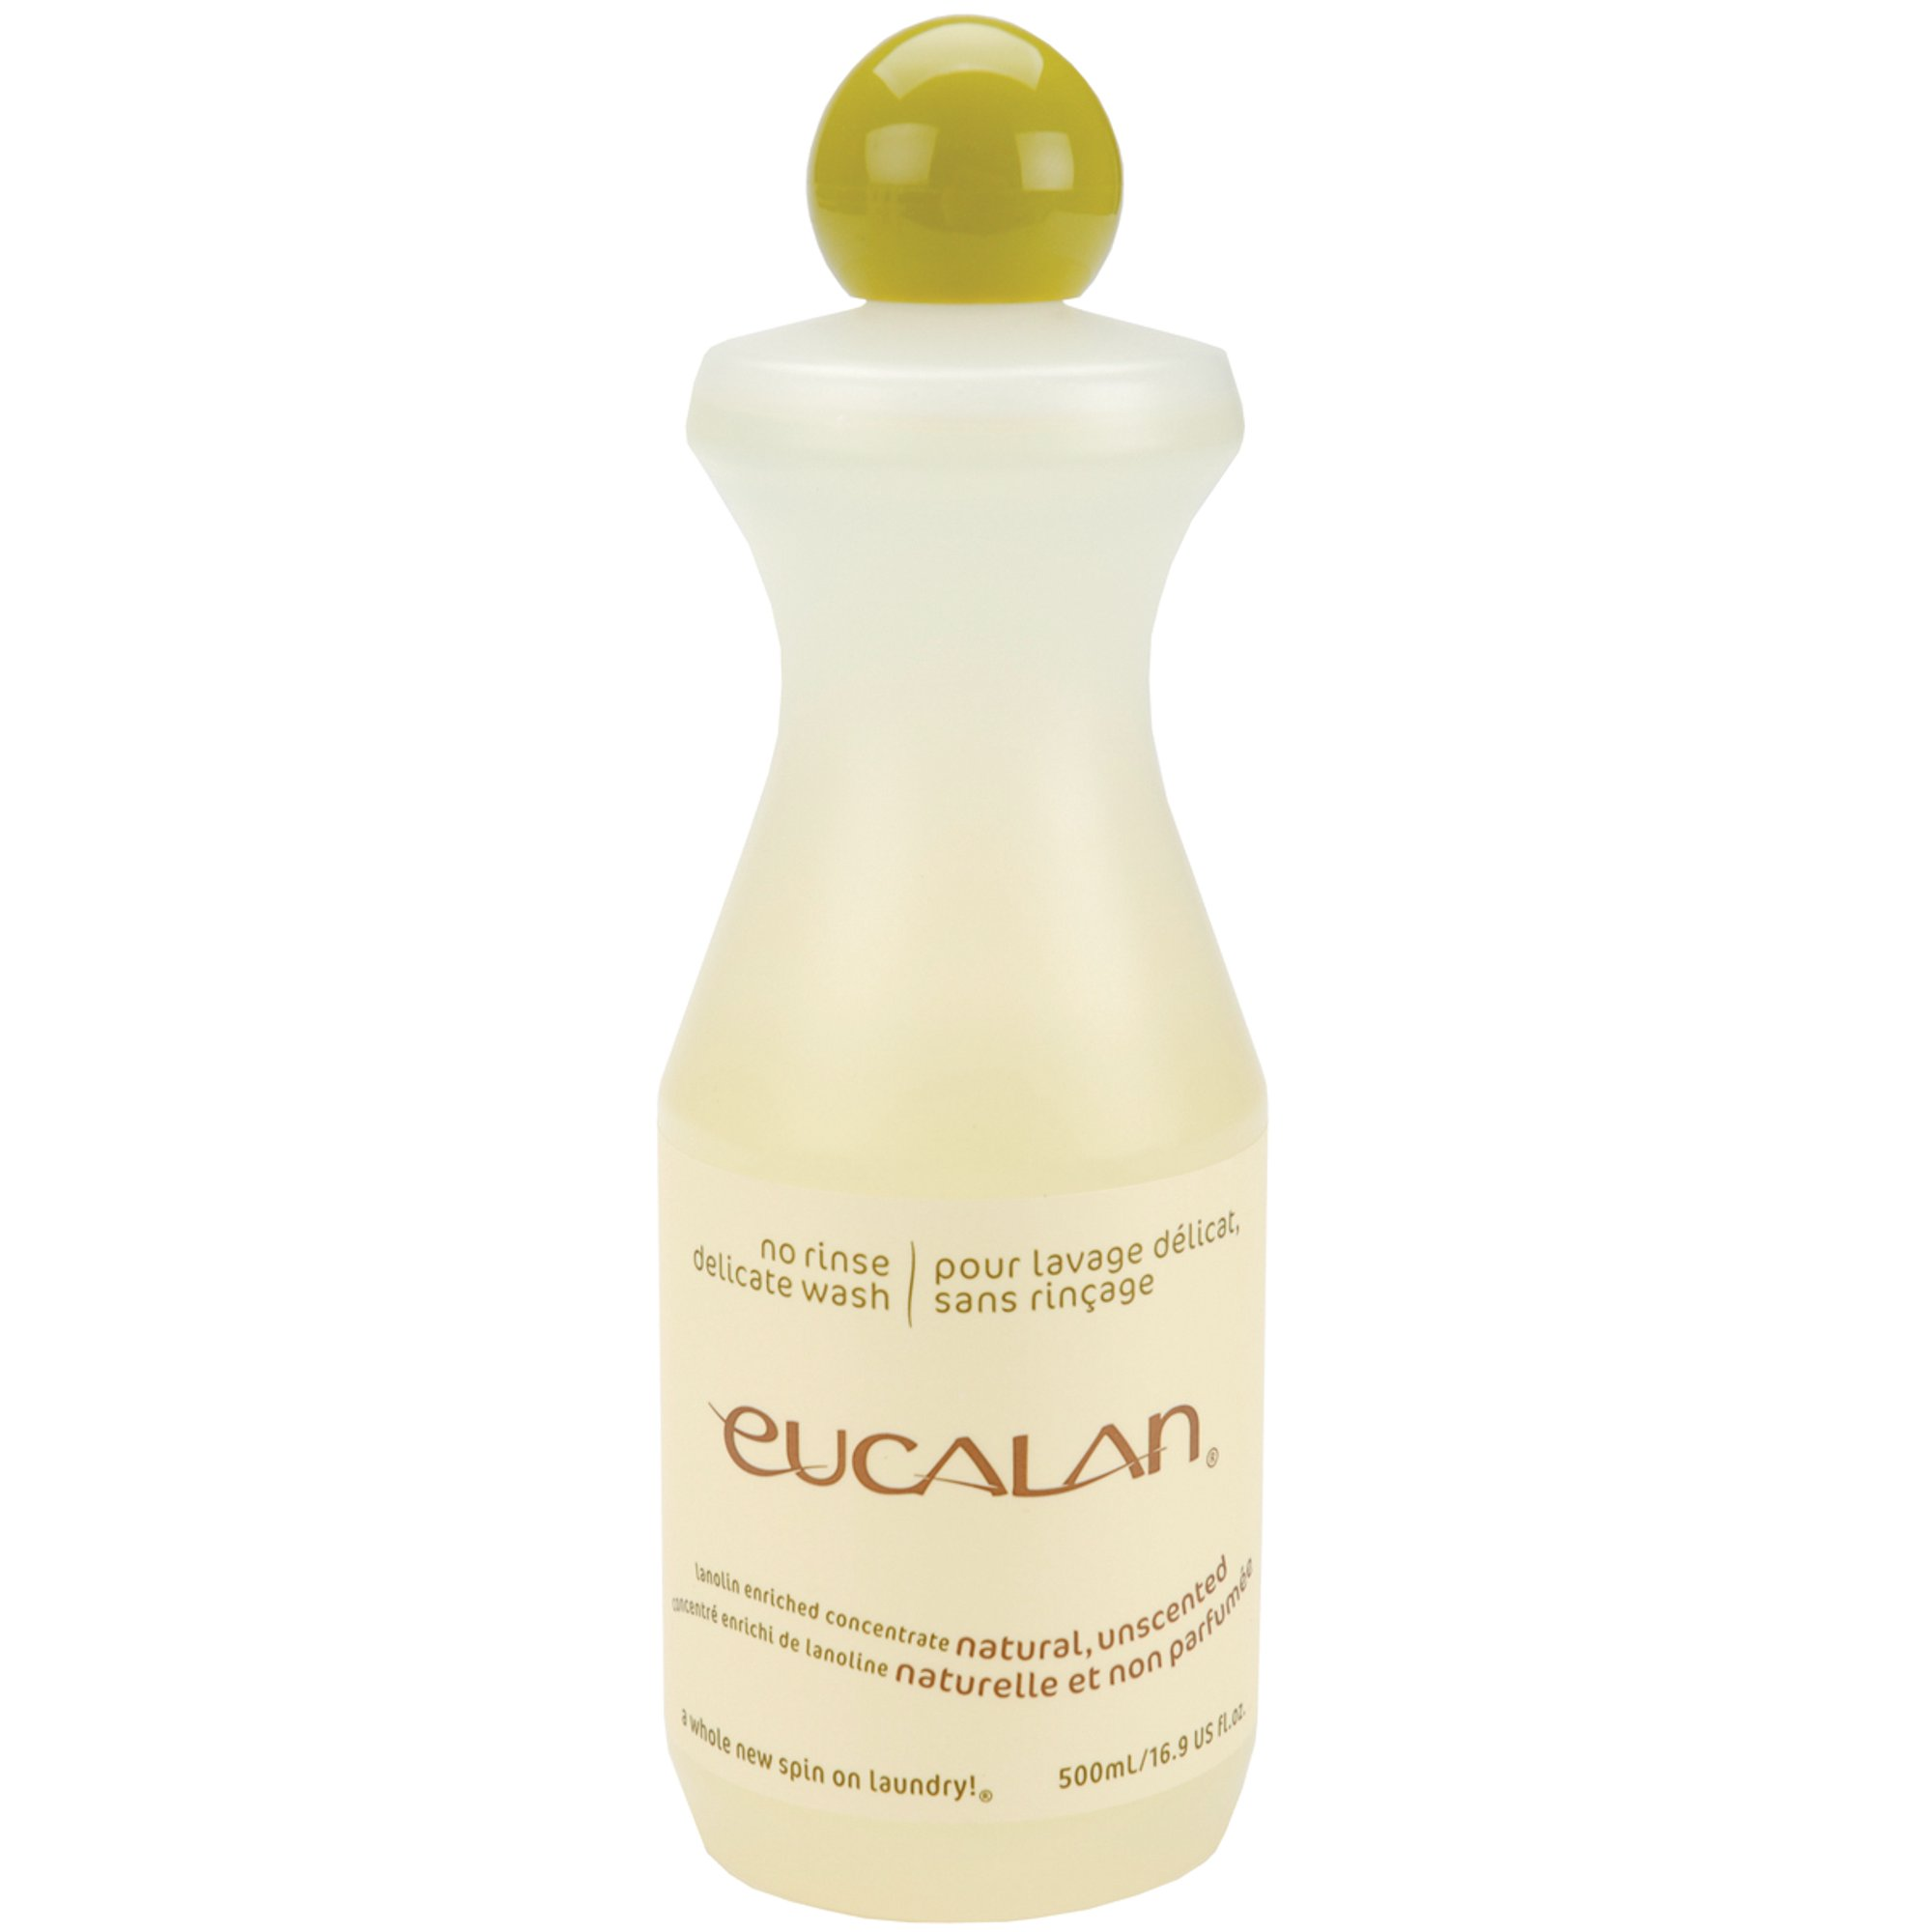 EUCALAN - Delicate Wash -  Unscented